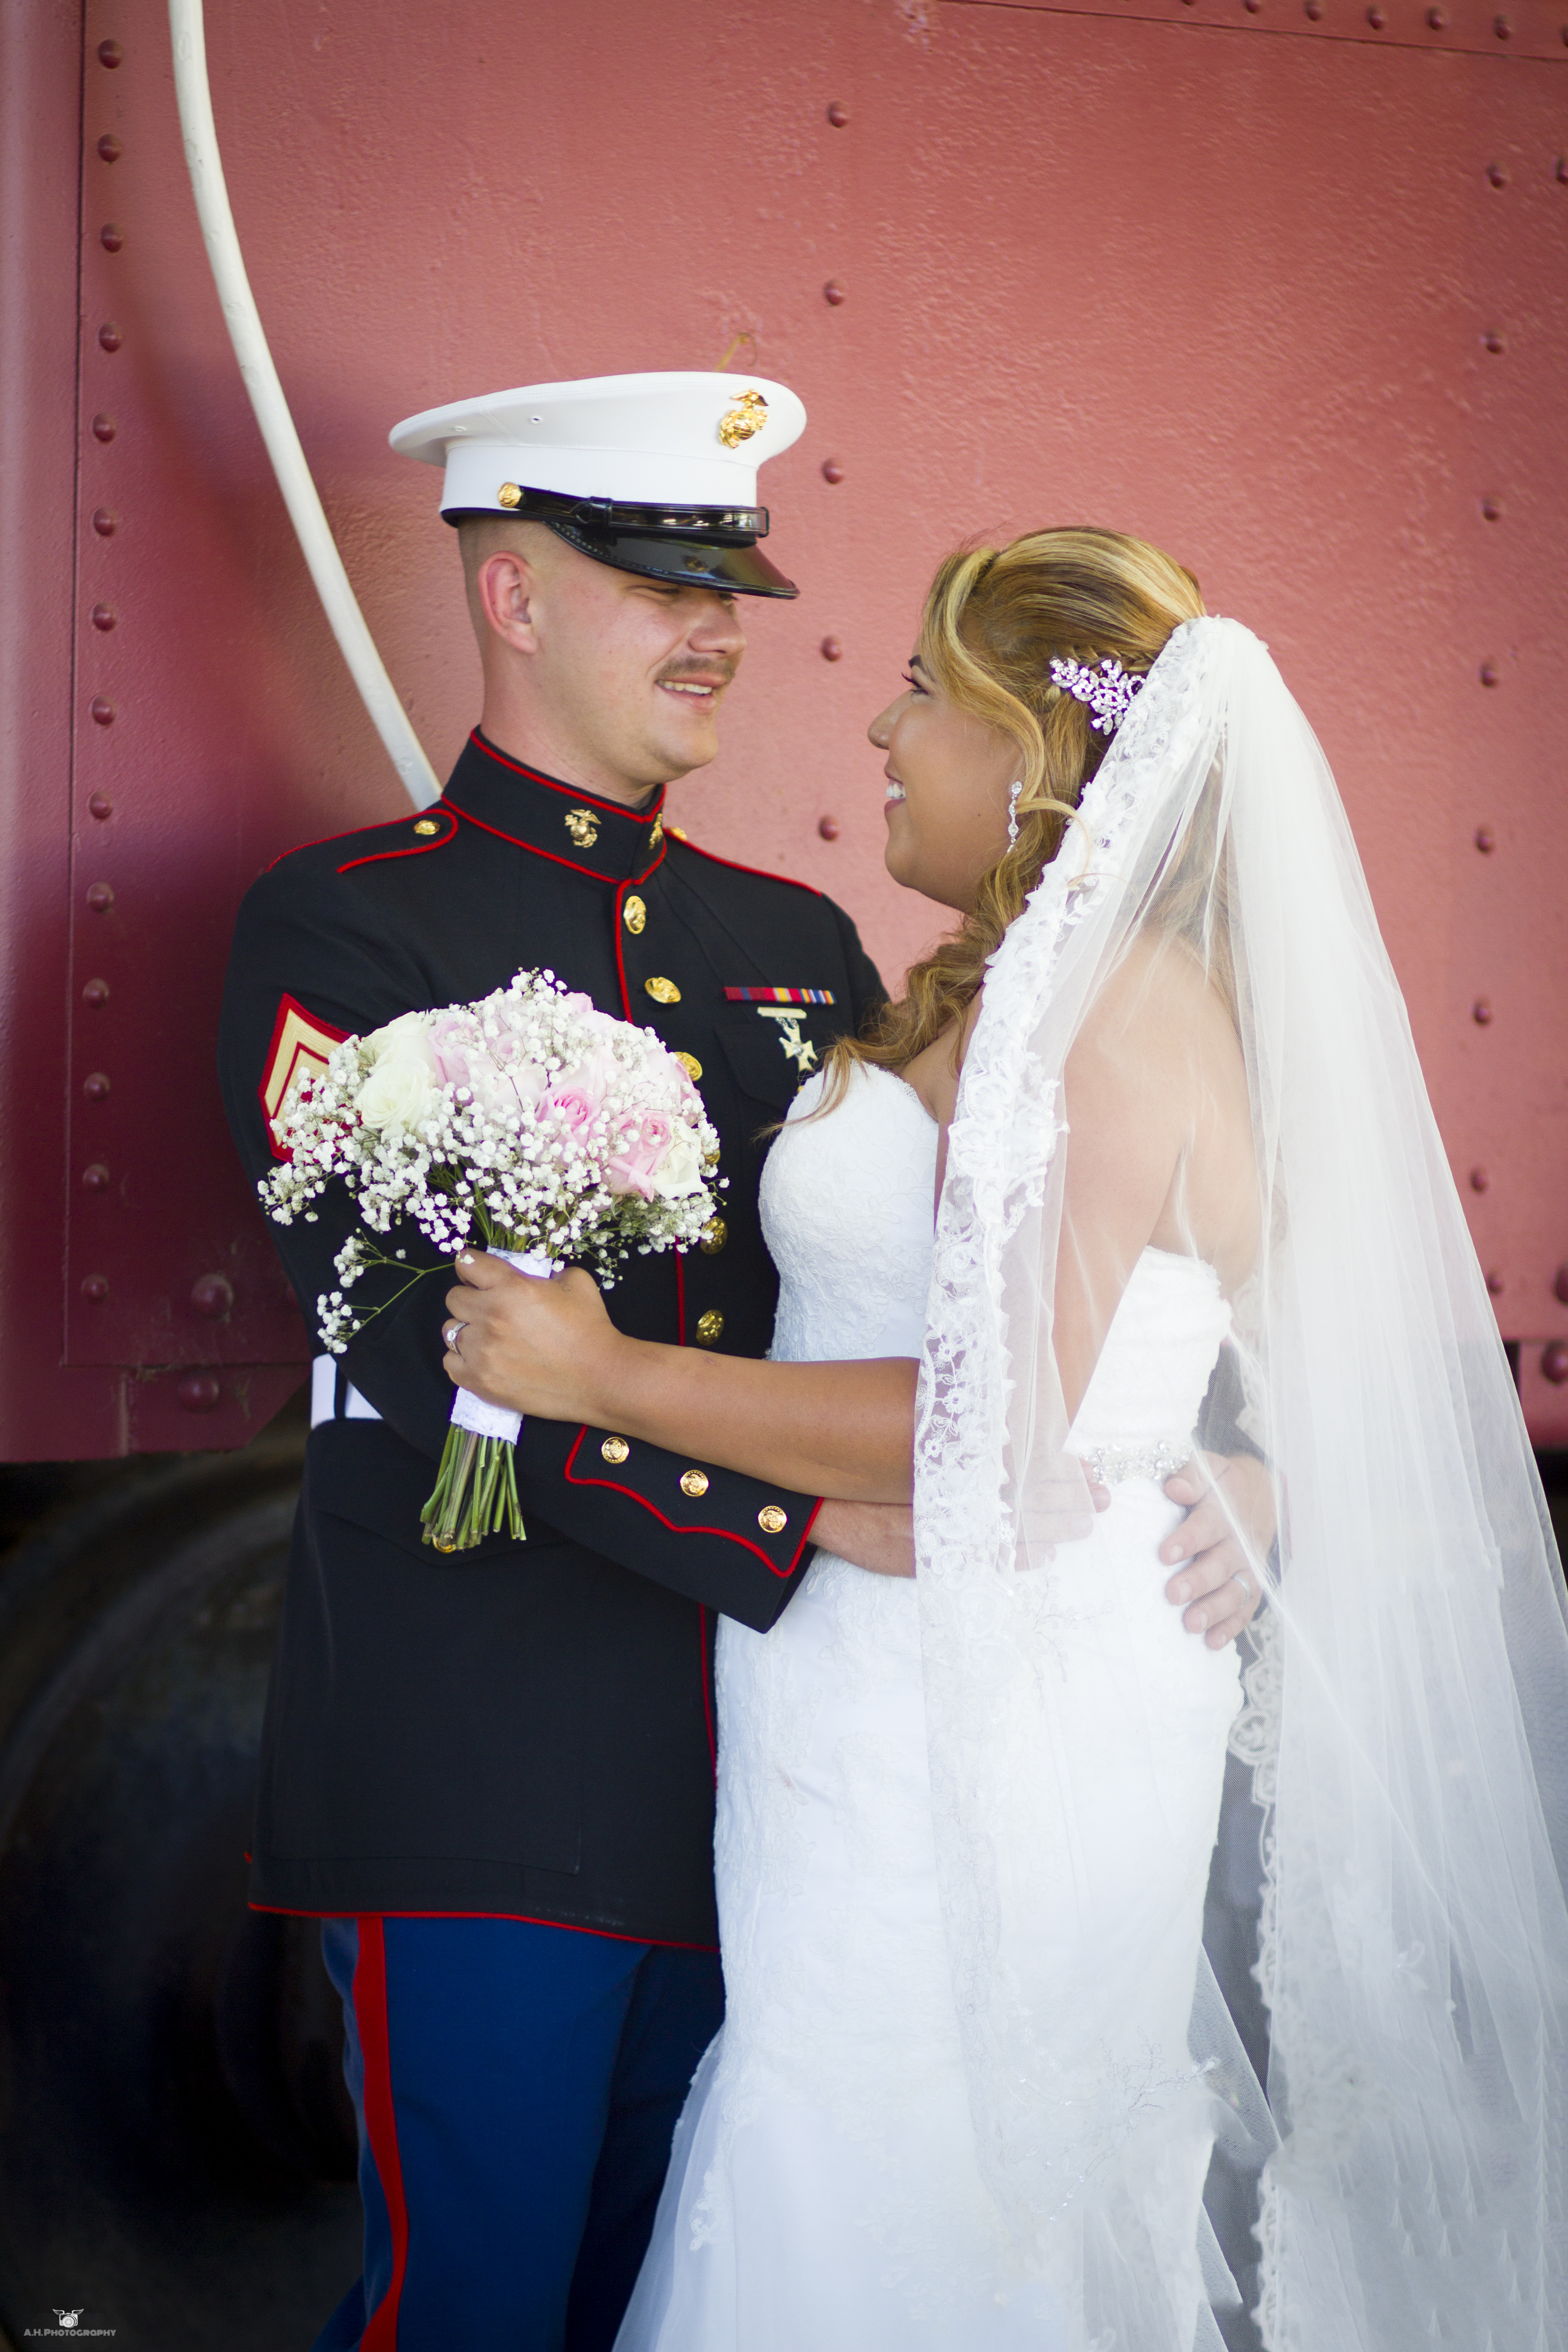 Military Wedding Photography!